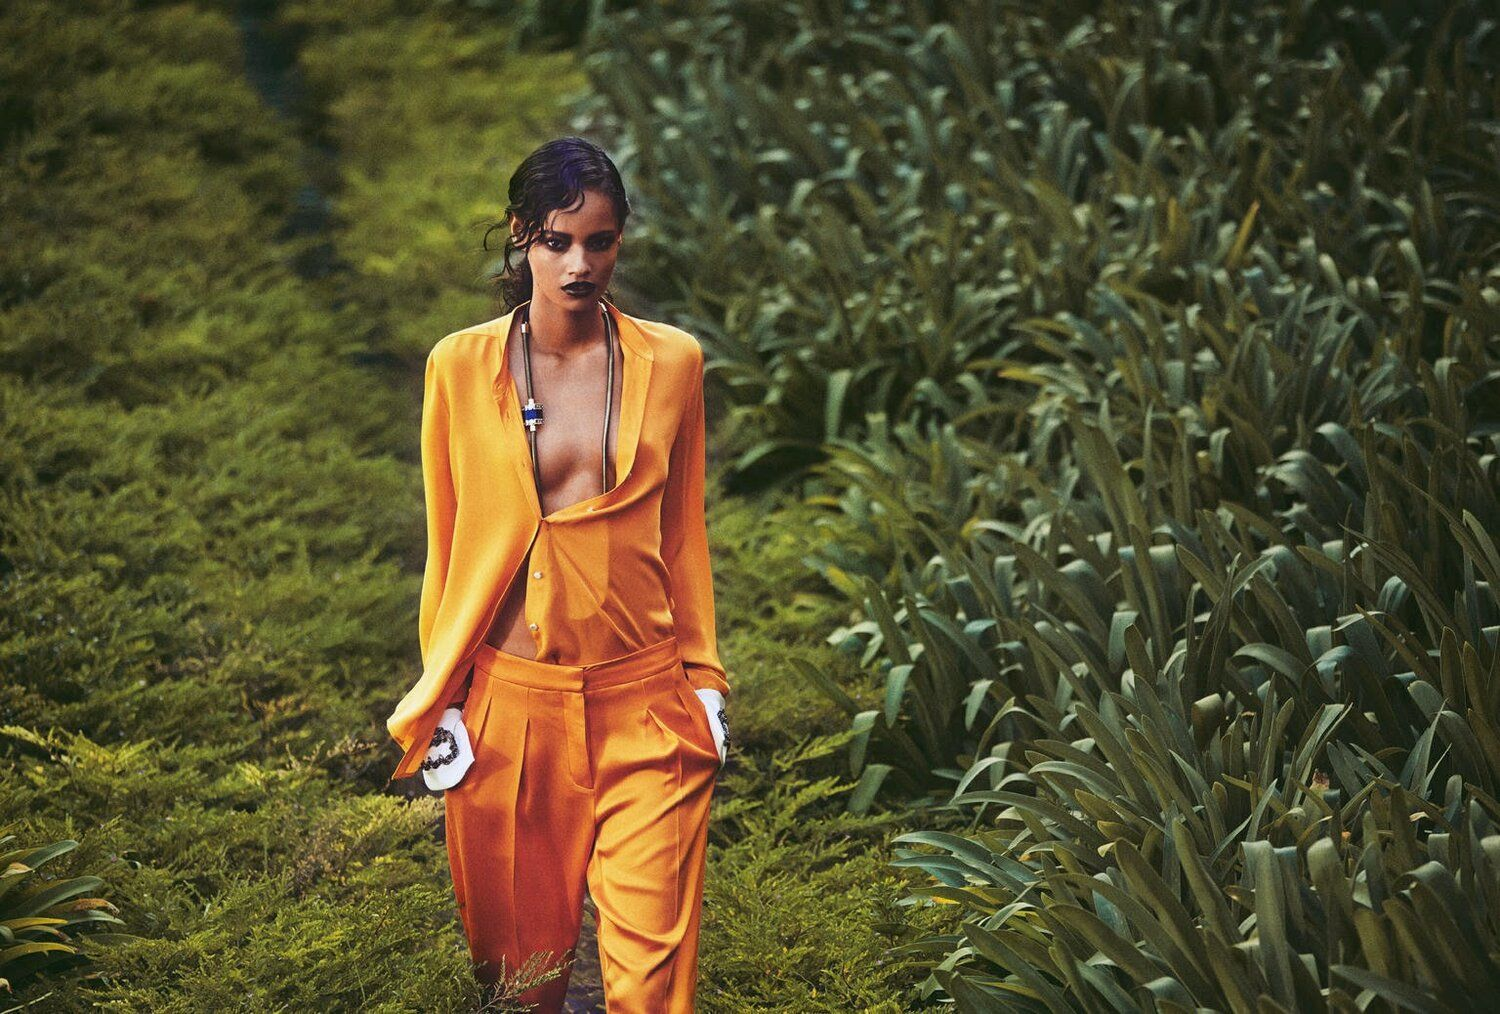 Malaika Firth In Days Of Heaven By Norman Jean Roy For Porter 3 Archives Anne Of Carversville Norman Jean Roy Fashion Editorial Fashion